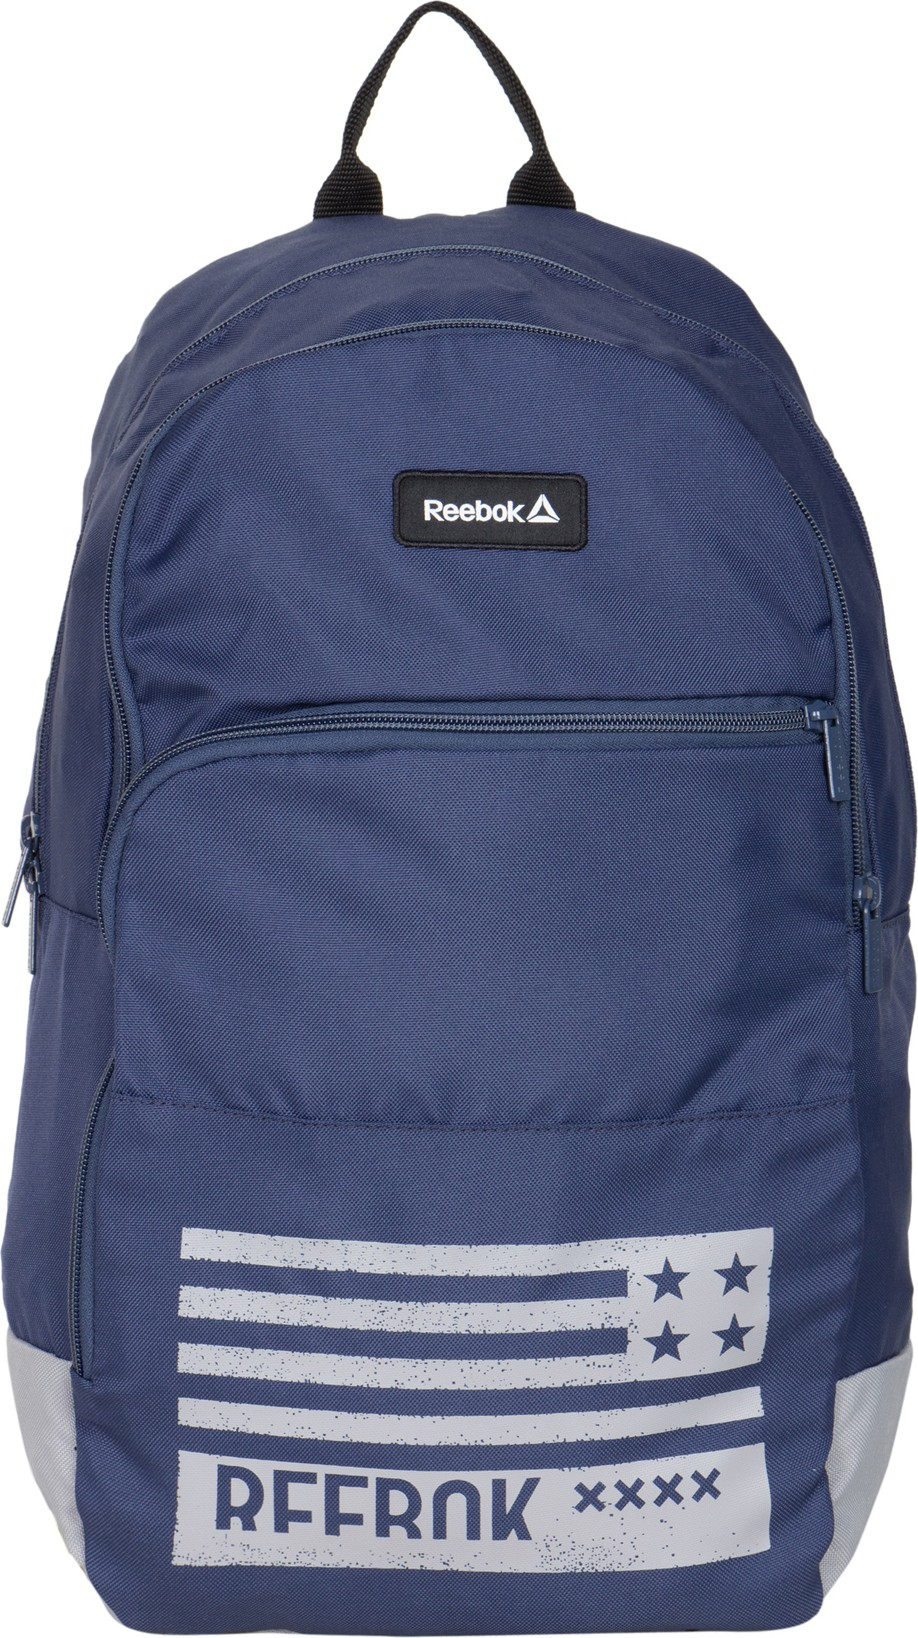 Flipkart - Backpacks, Duffel Bags & more Puma, AT & more